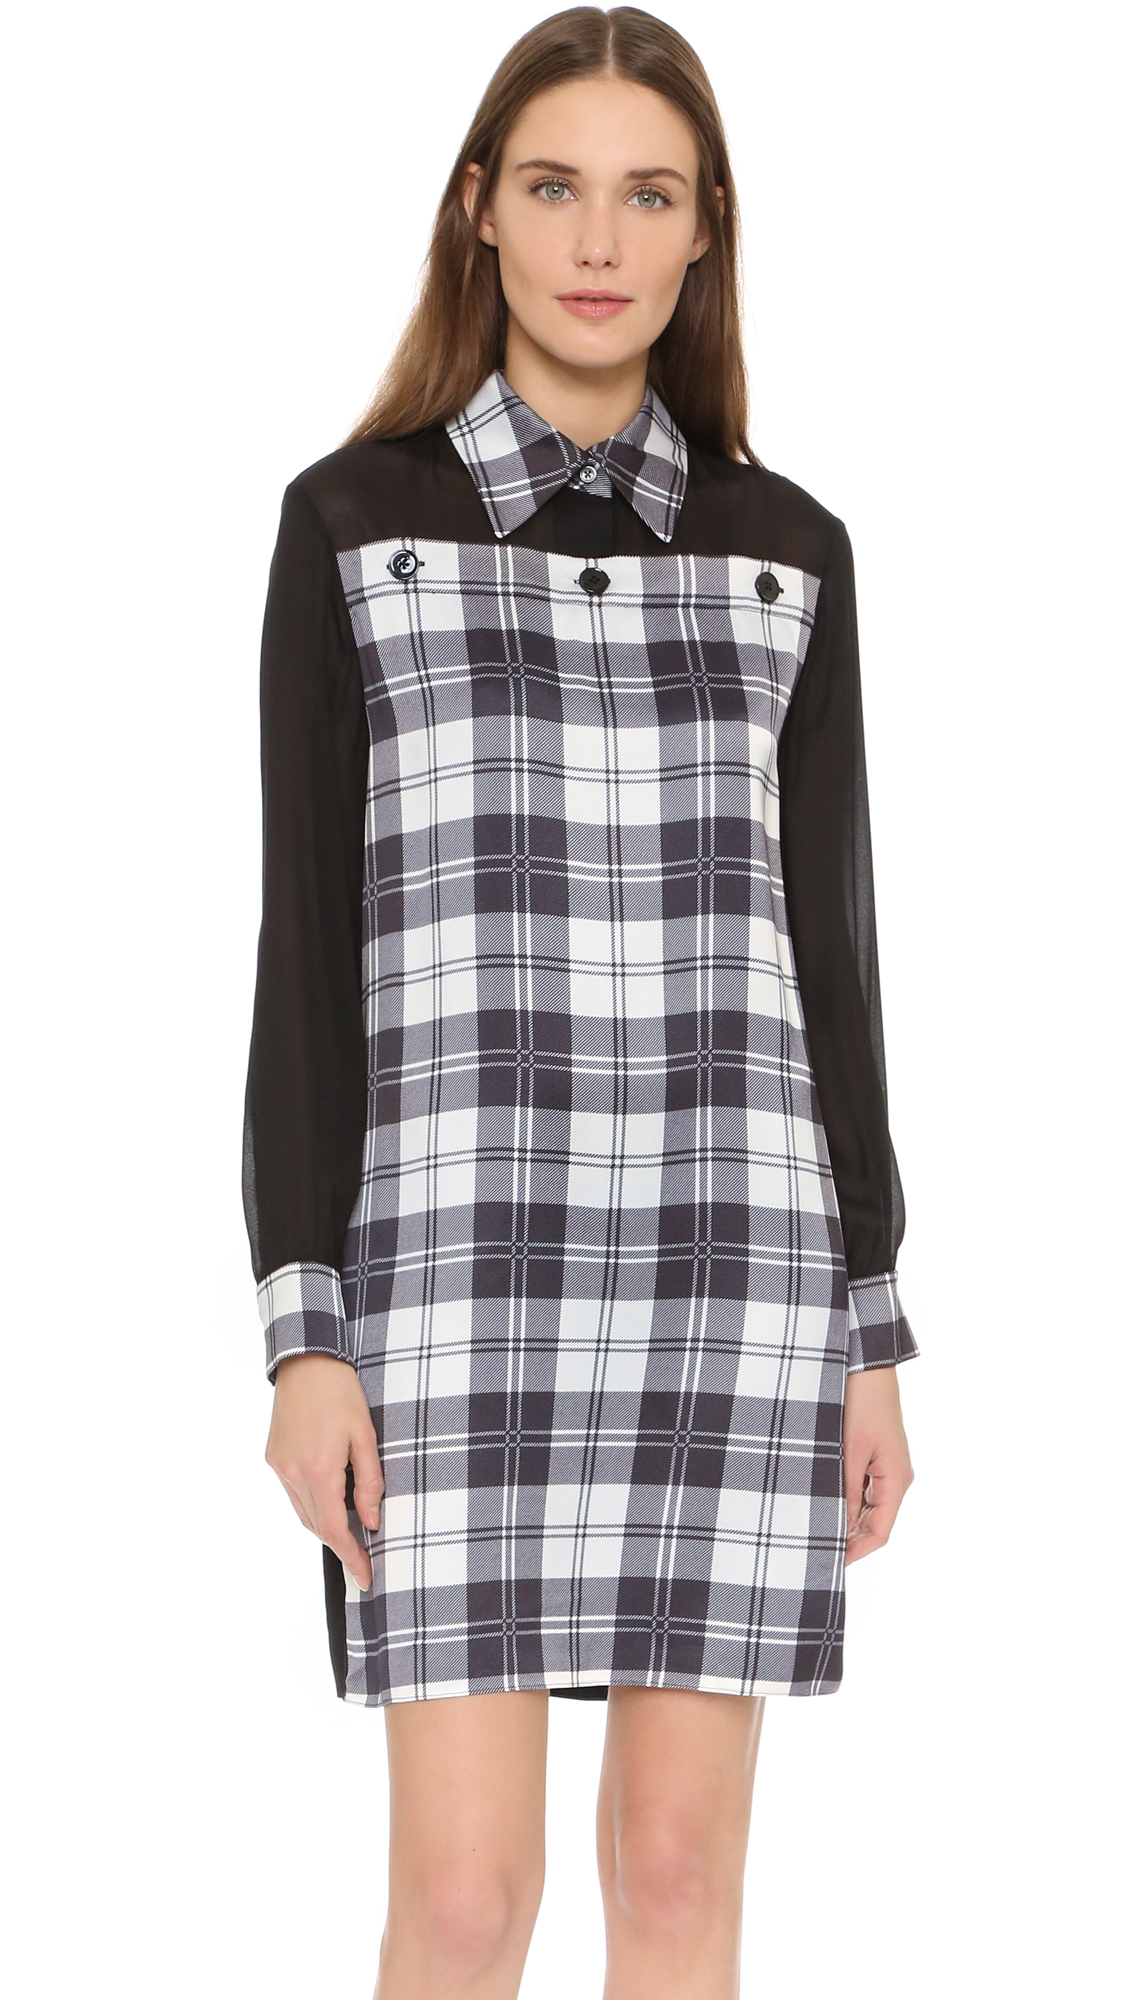 Edun Tartan Shirtdress - Black/White at Shopbop